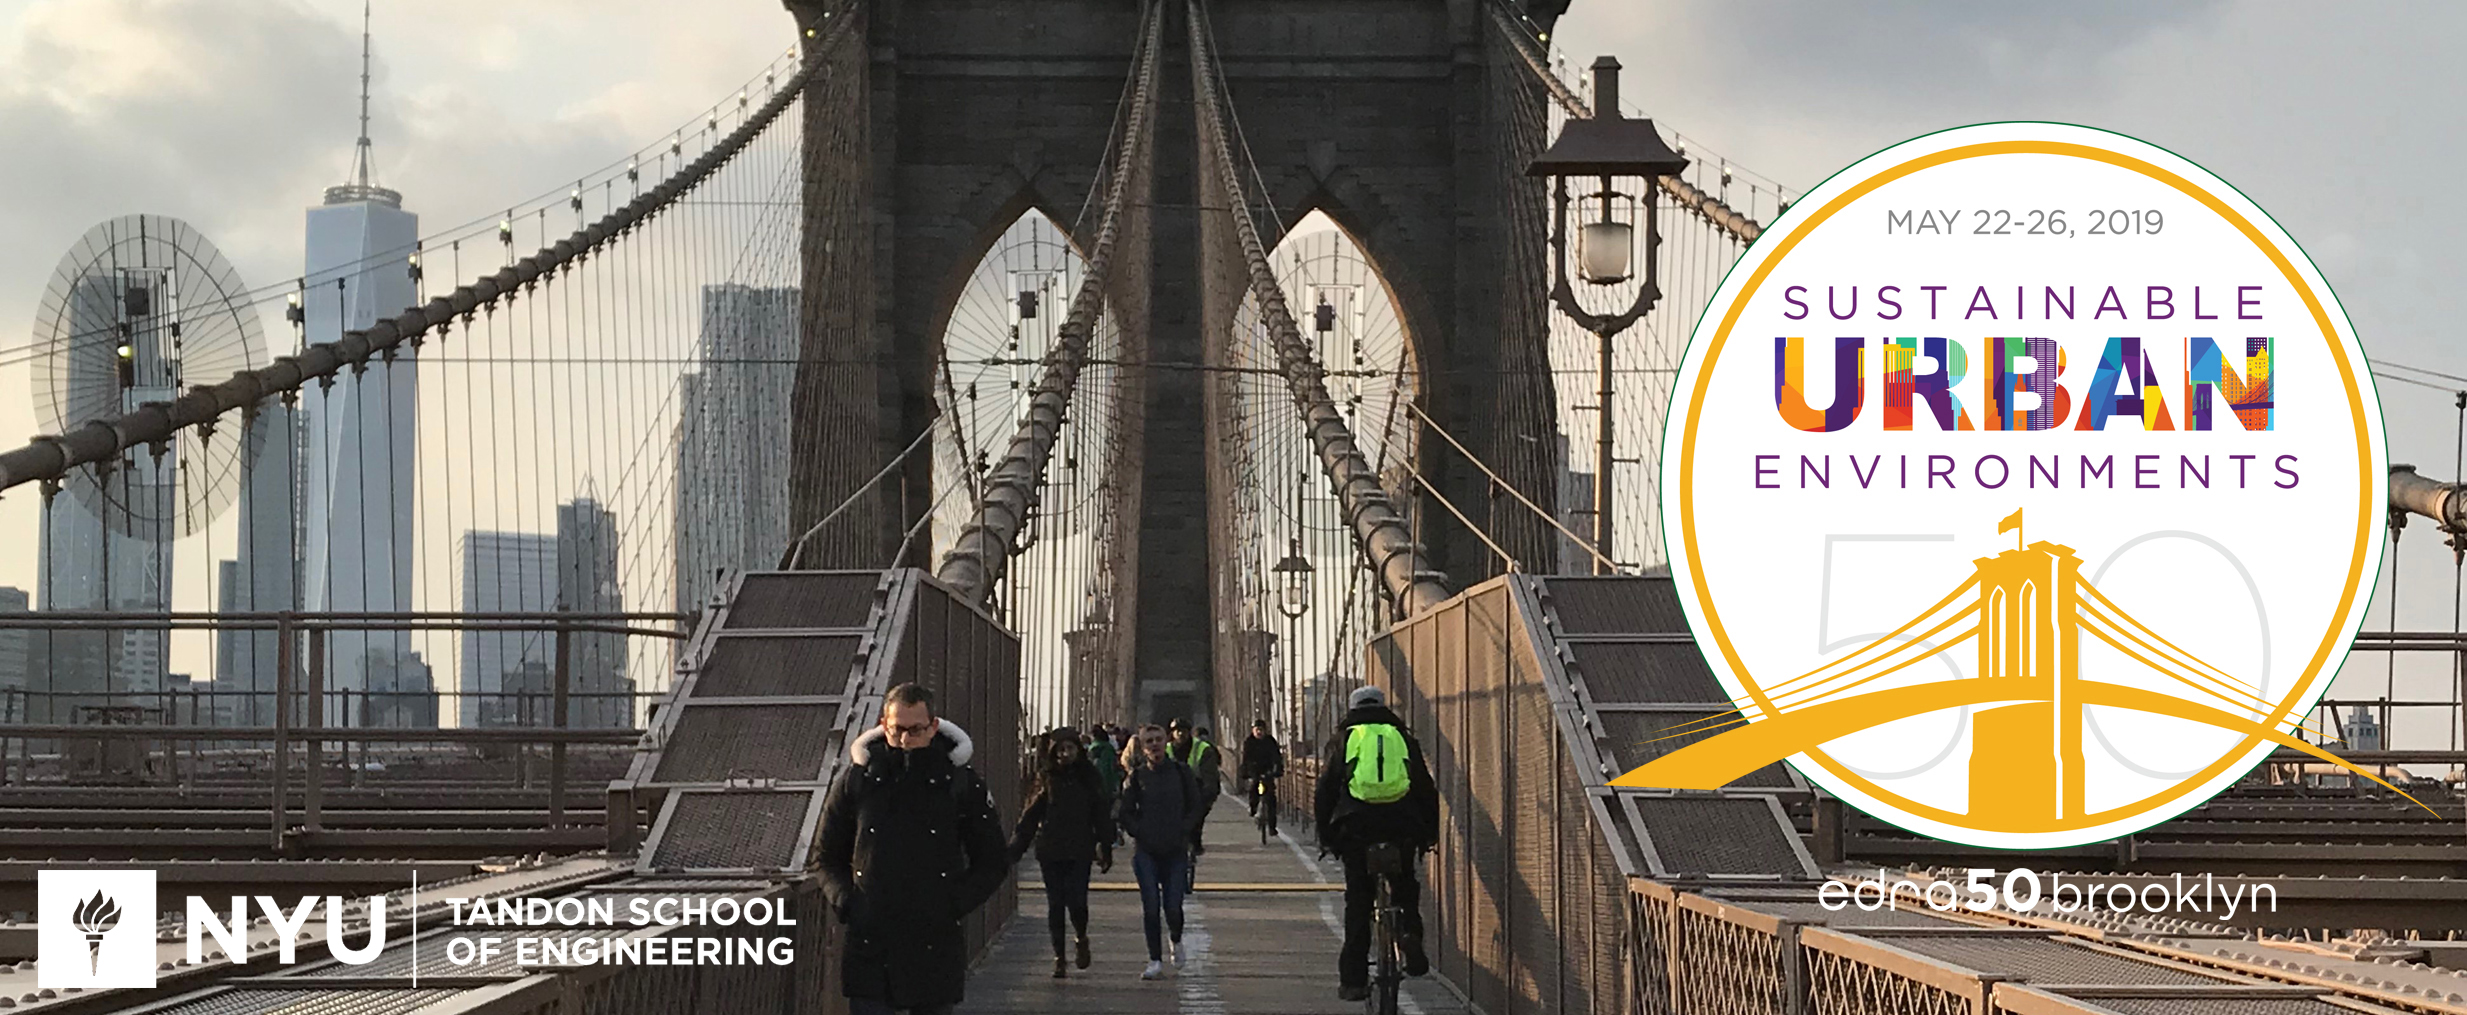 EDRA50Brooklyn: Sustainable Urban Environments – May 22-26, 2019